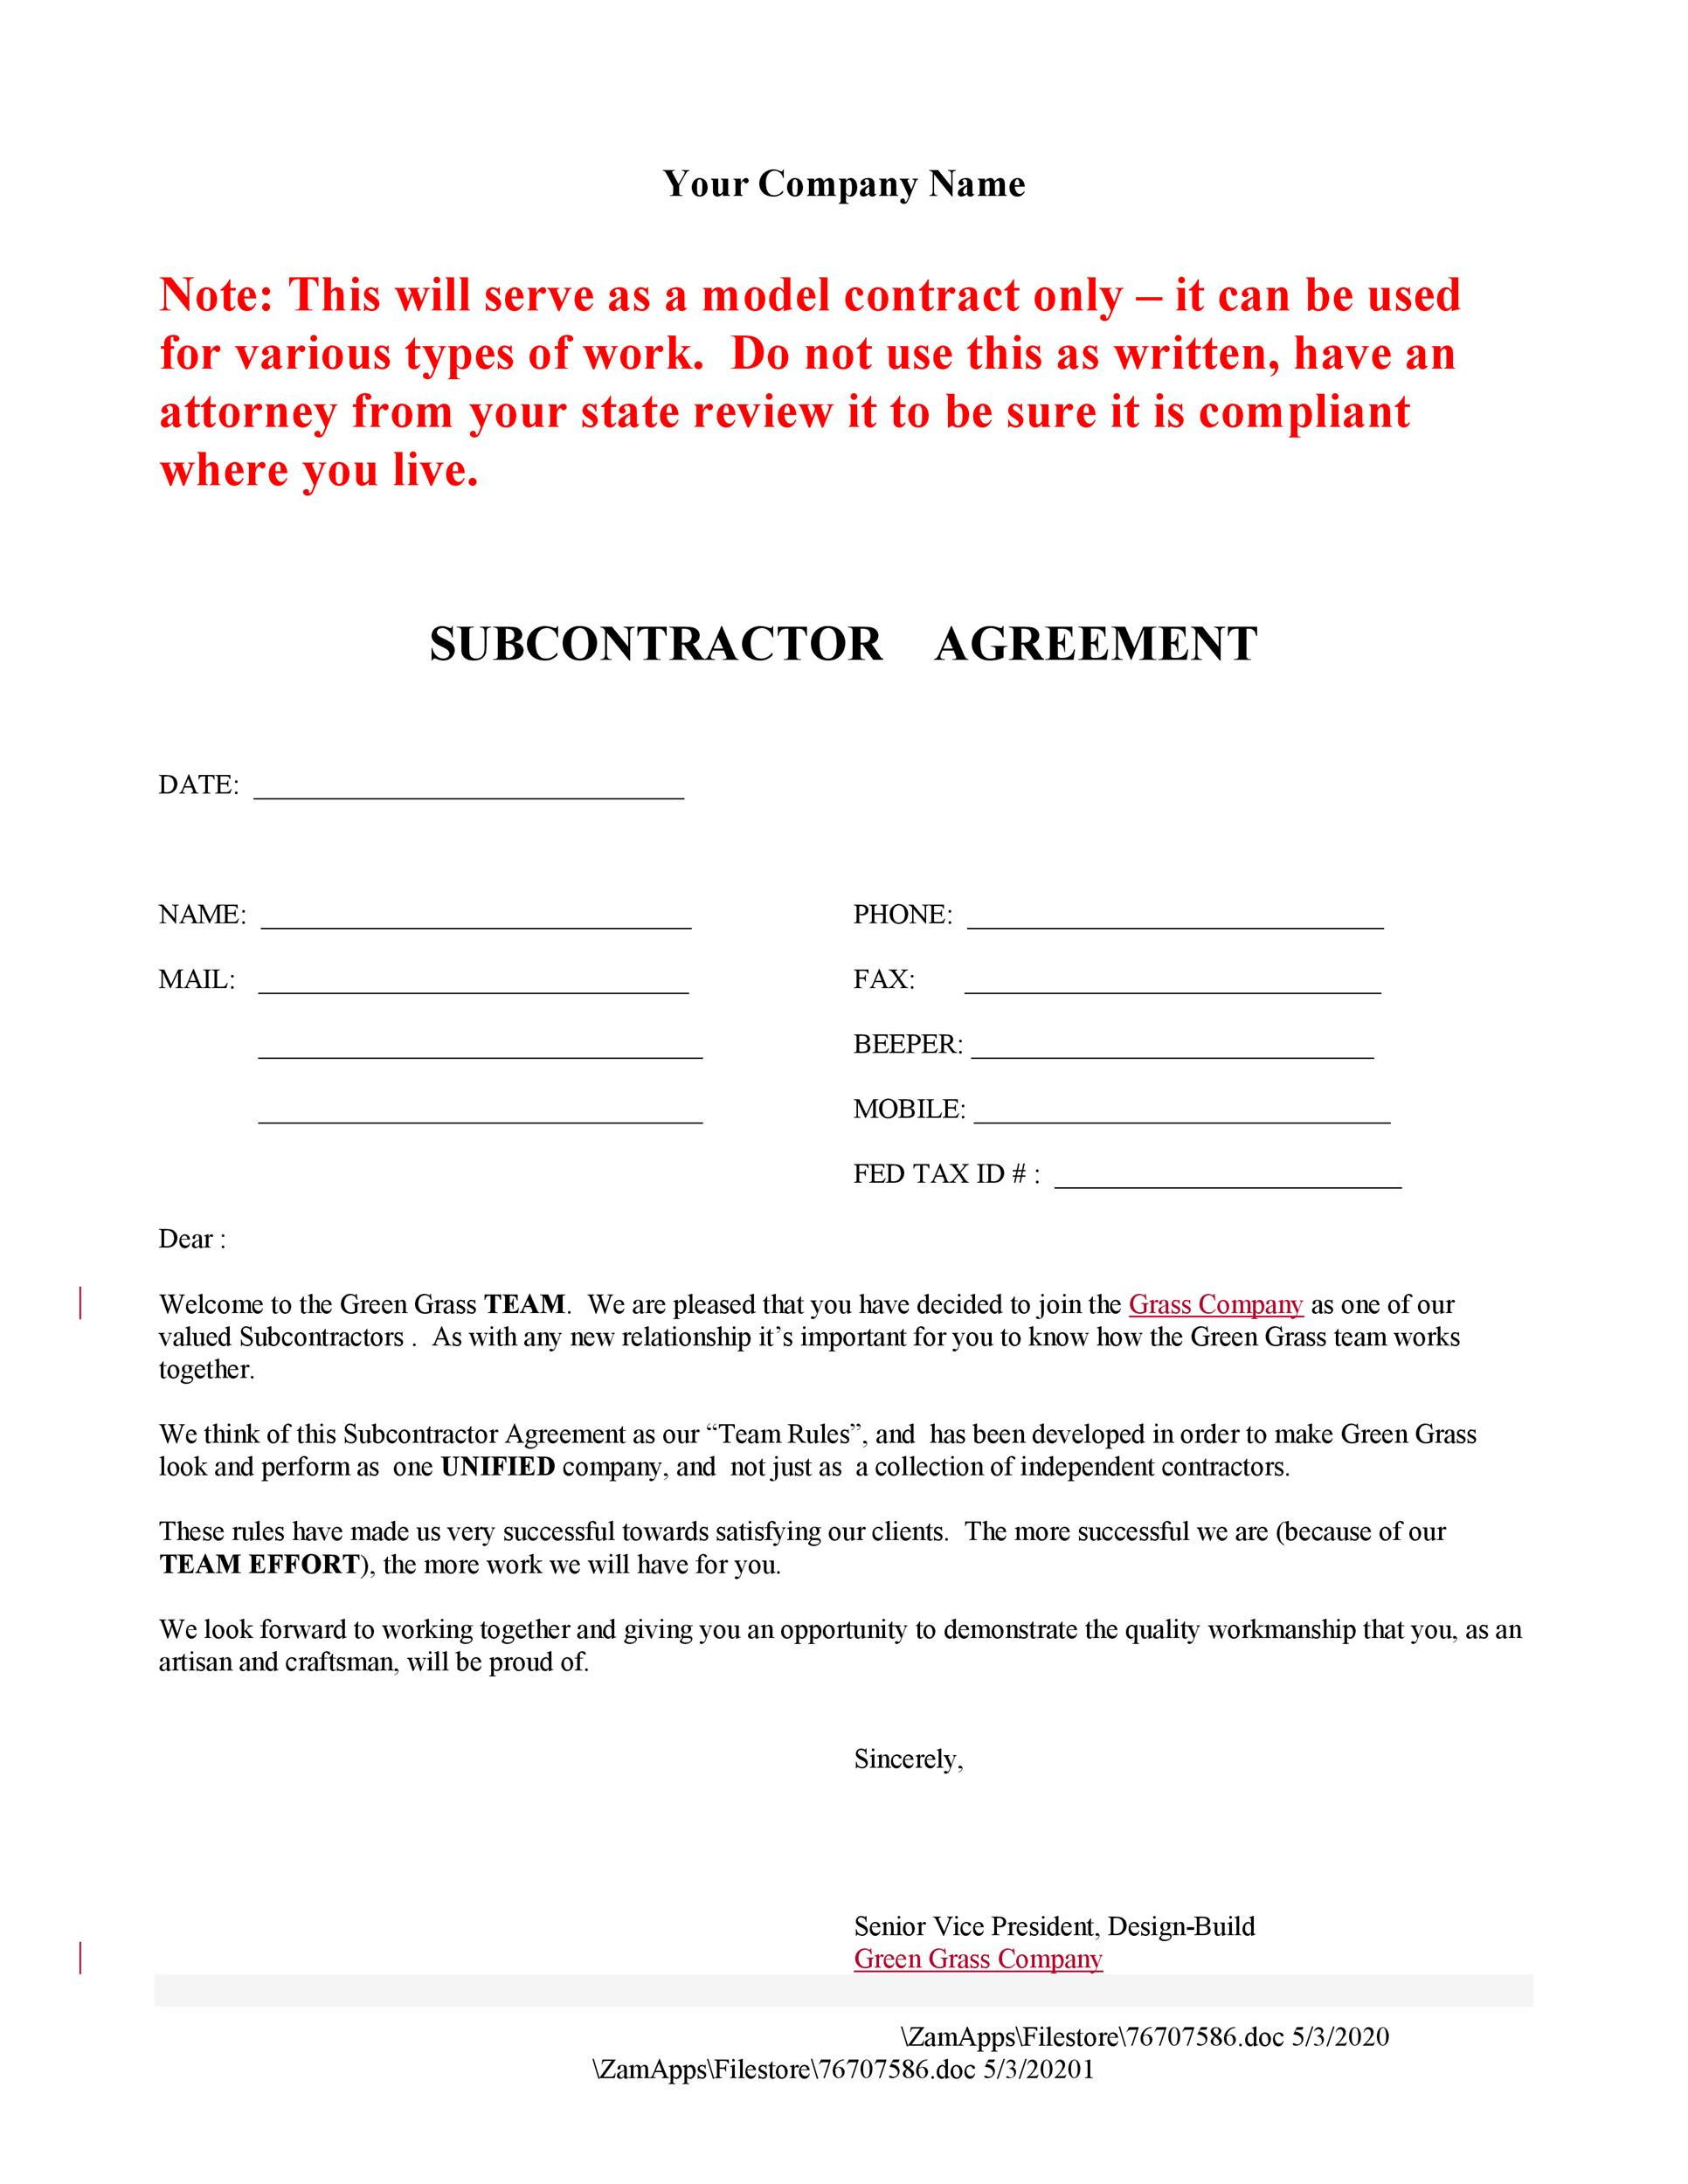 Subcontractor Agreements Subcontractor Agreement For Subcontractor